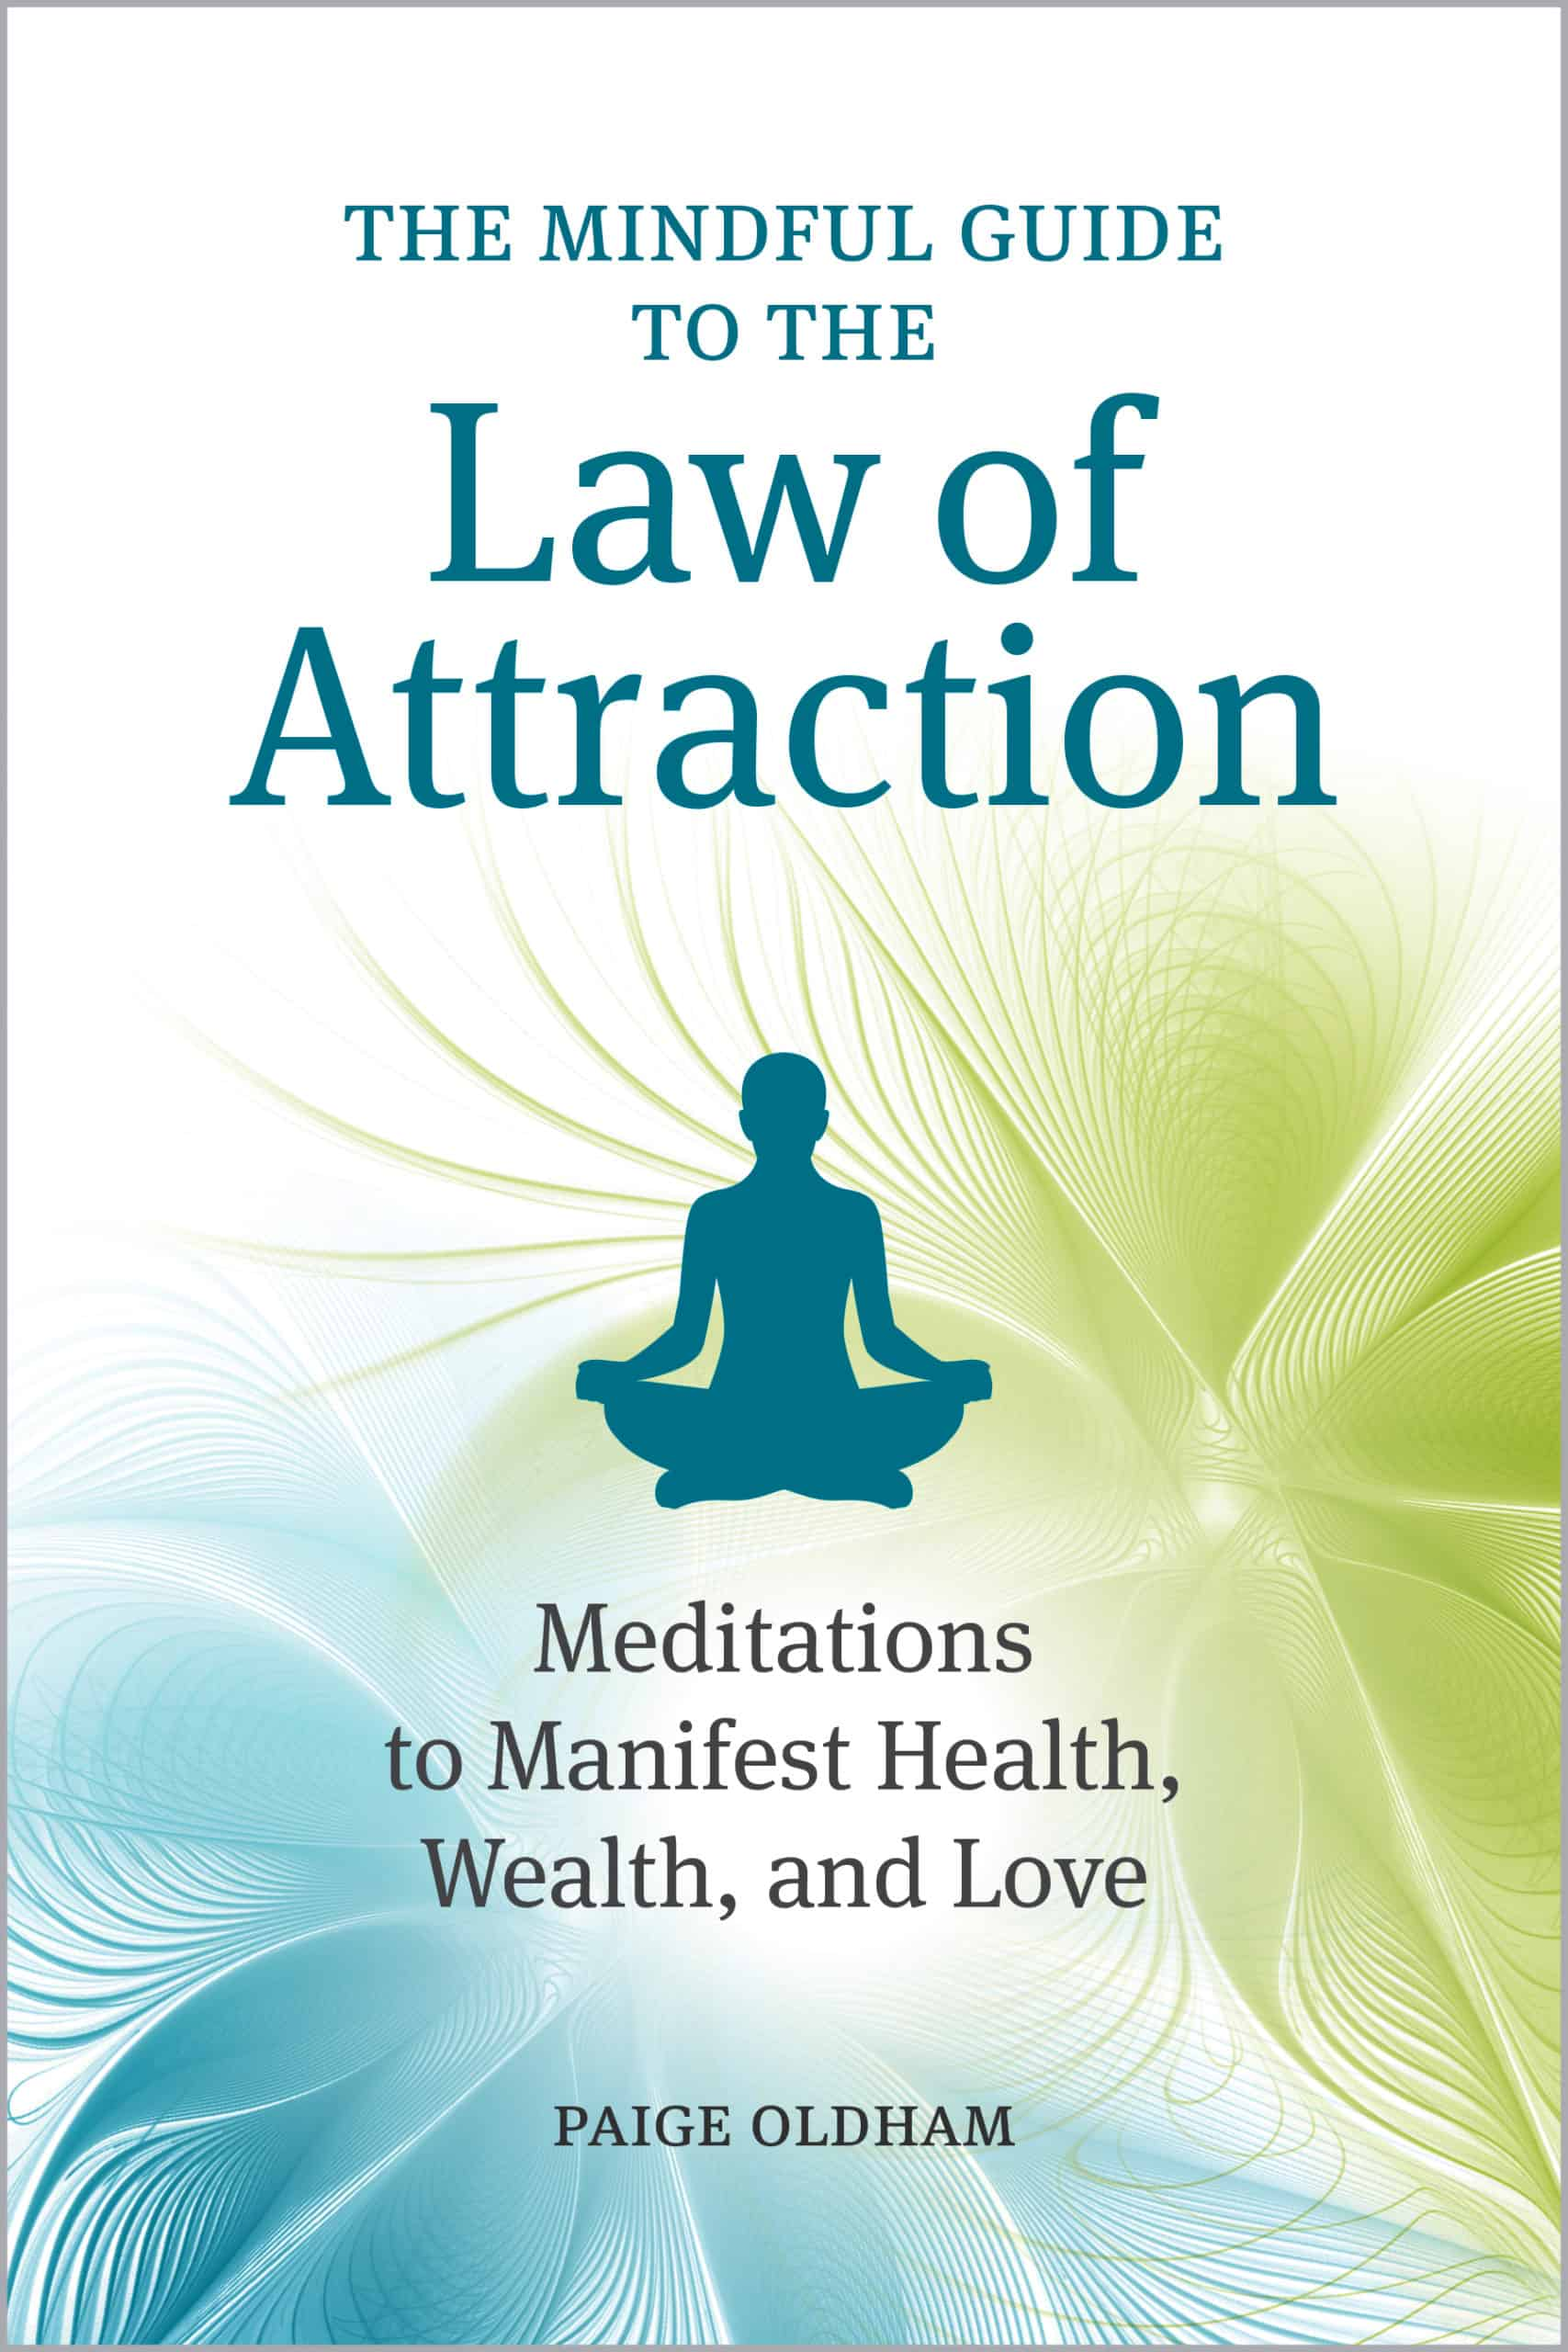 The Mindful Guide to the Law of Attraction